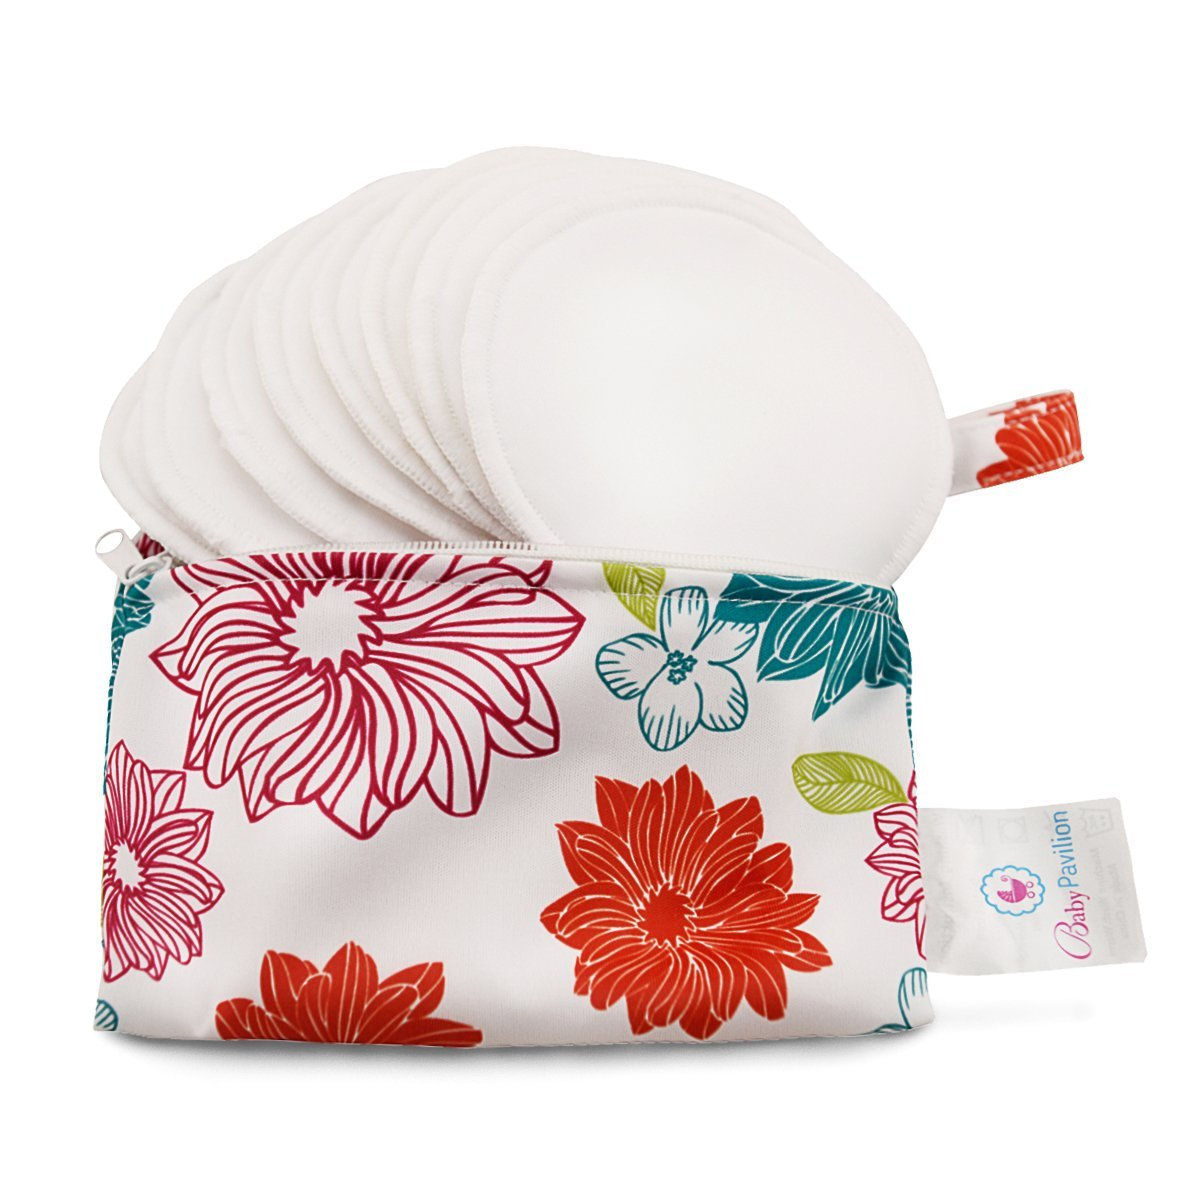 Baby Pavilion Washable Organic Complete Free Shipping Bamboo L Limited time cheap sale Nursing Flower Pads with